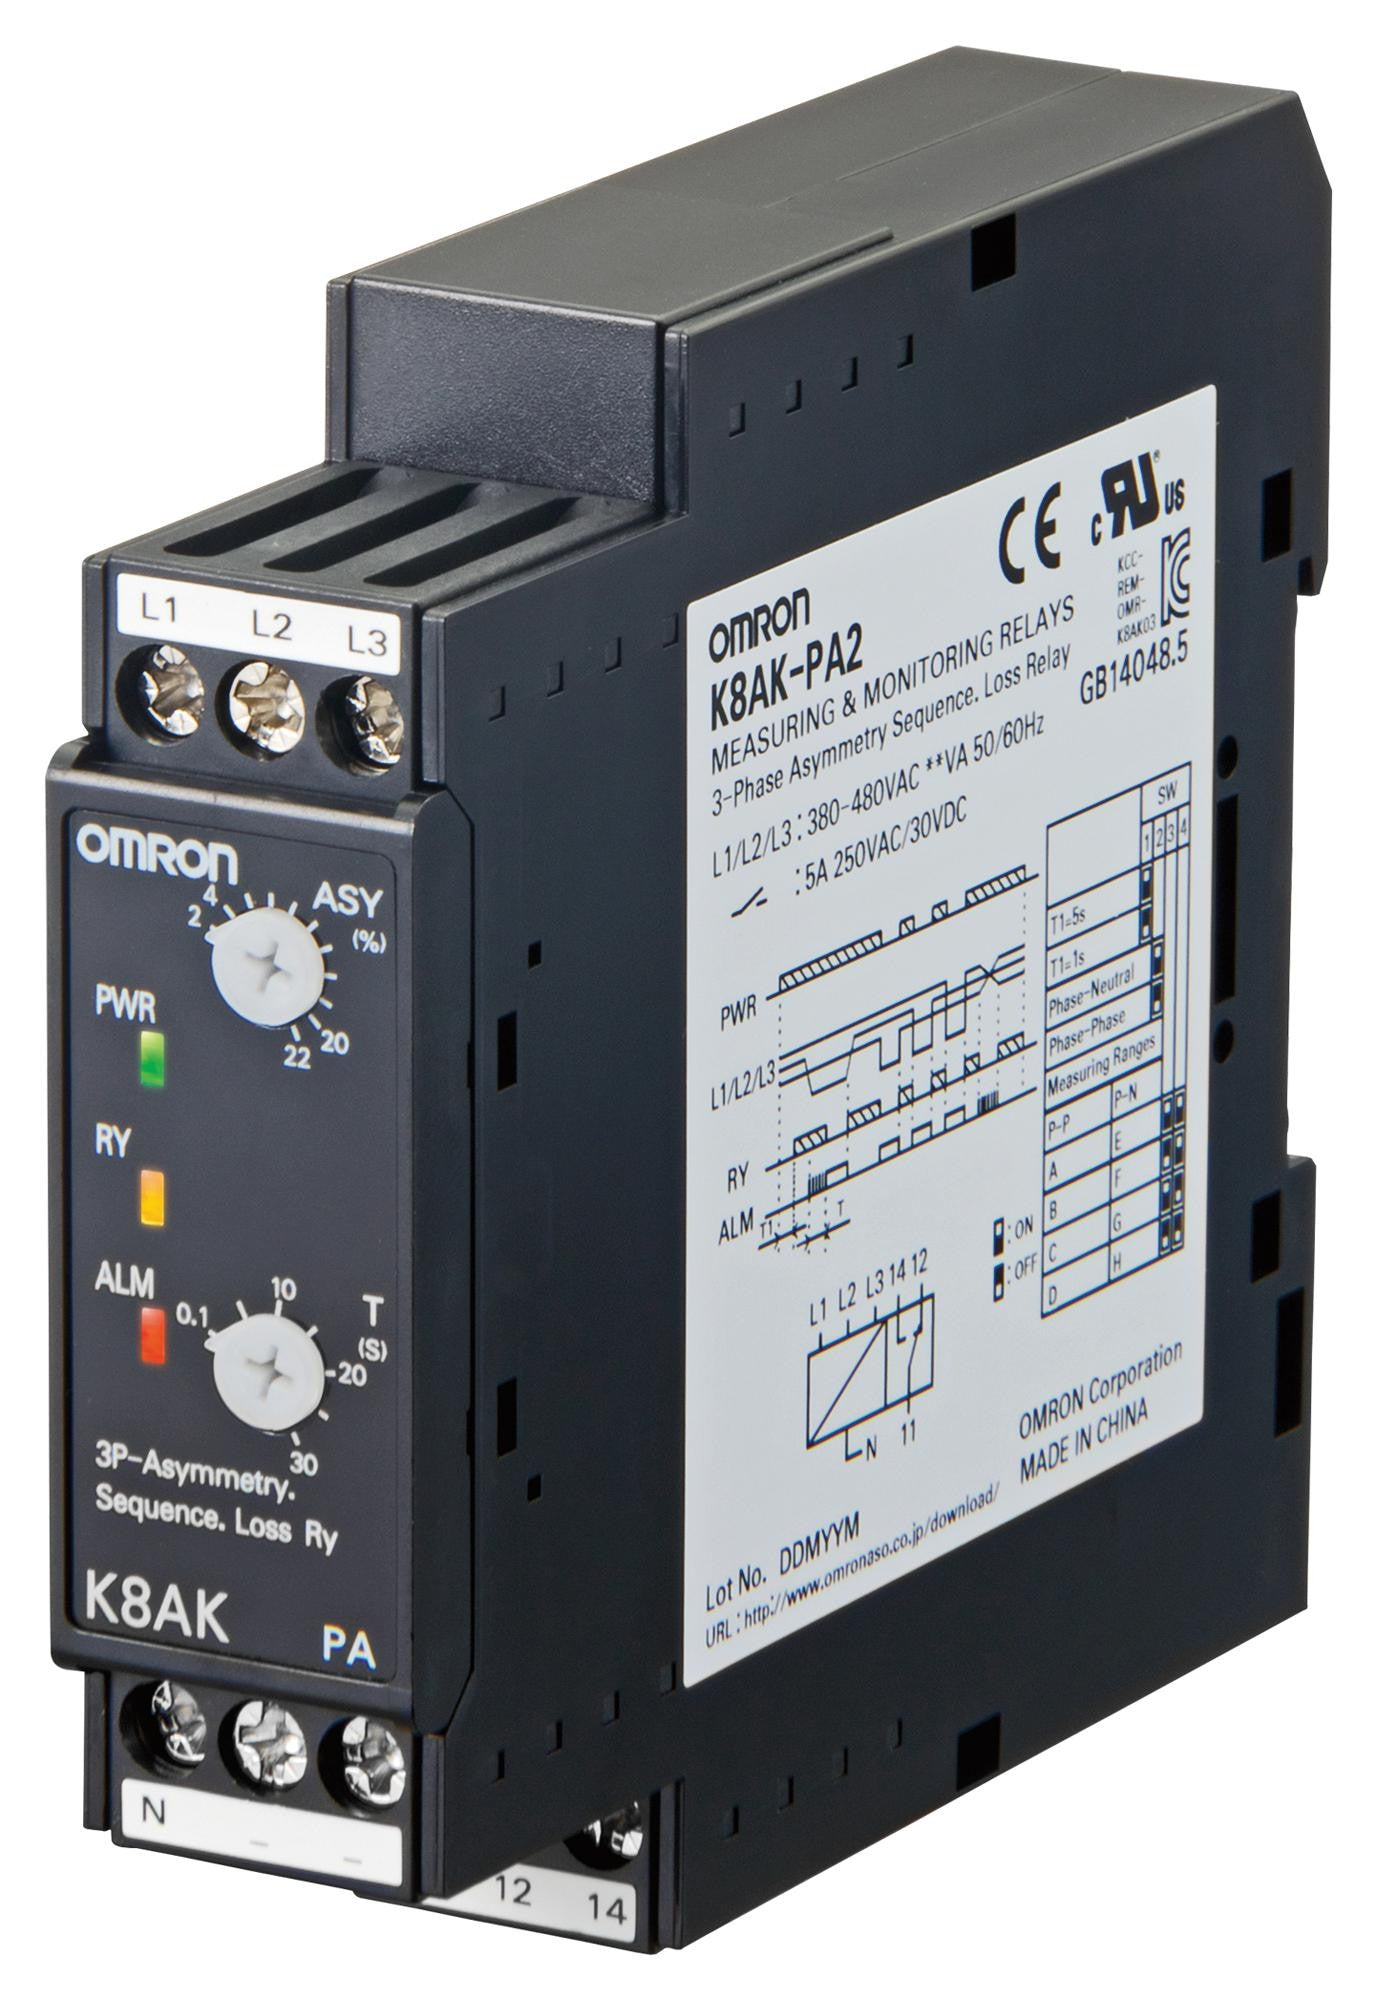 Dpdt Relay Din Rail Products Tagged Phase Monitoring Relays Tanotis Omron Industrial Automation K8akpa2 Voltage Asymmetry K8ak Series Spdt